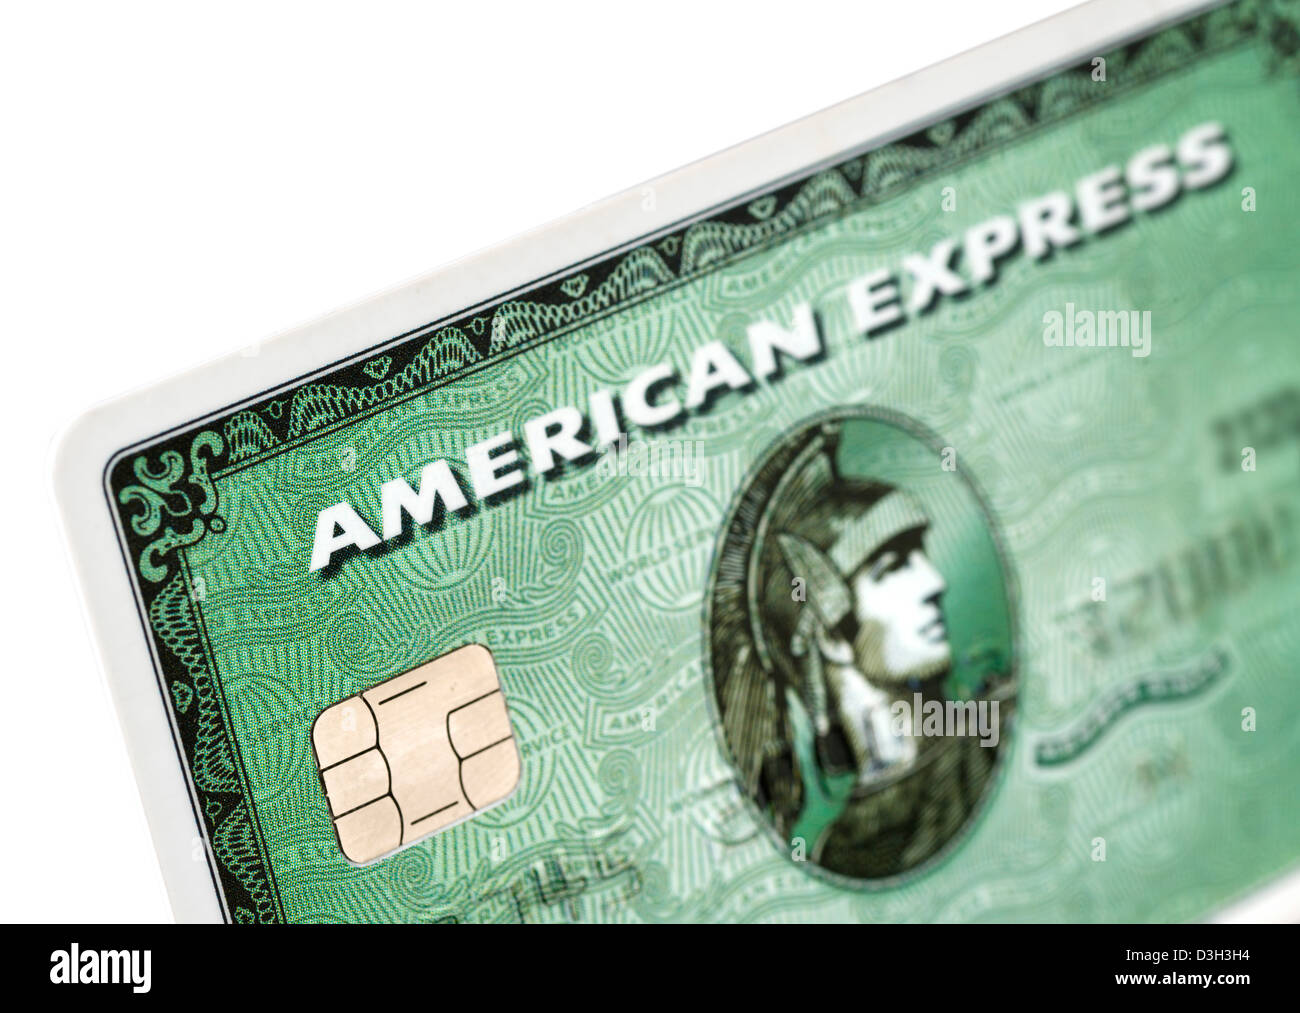 American Express classic green charge card - Stock Image